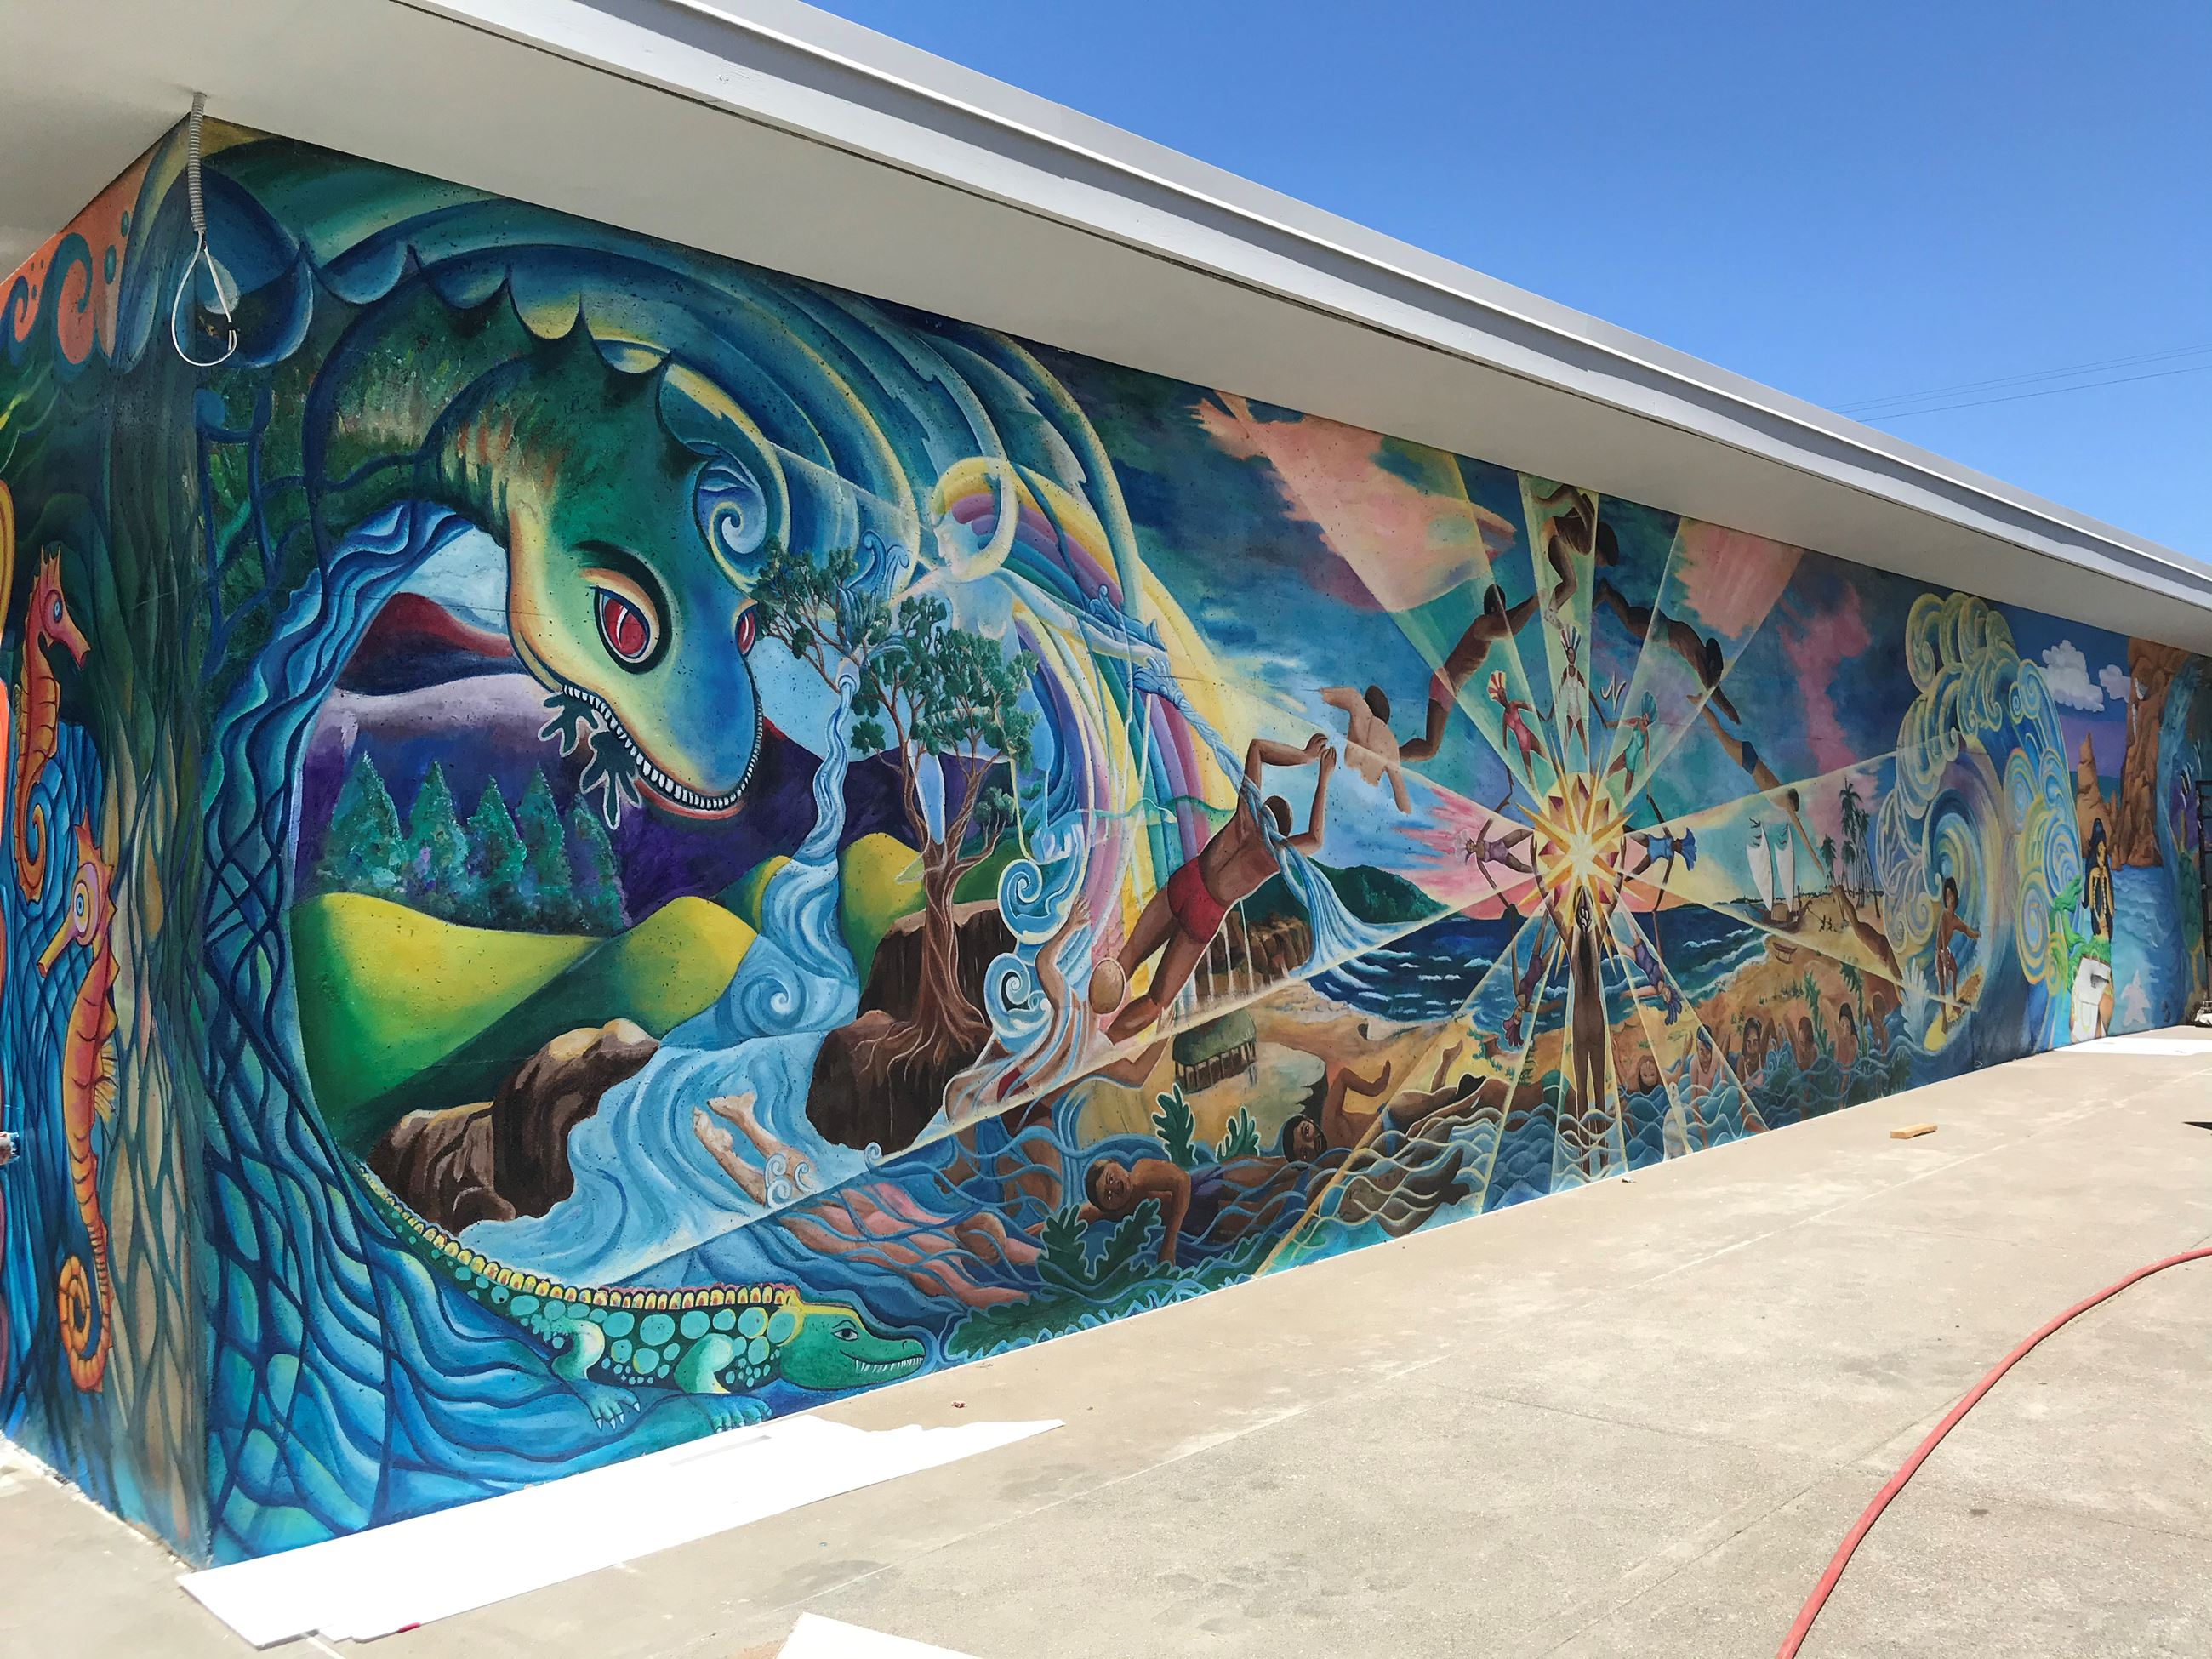 Phot shows the new mural on the Garfield Pool Building. The mural depicts a blue and green dragon ea